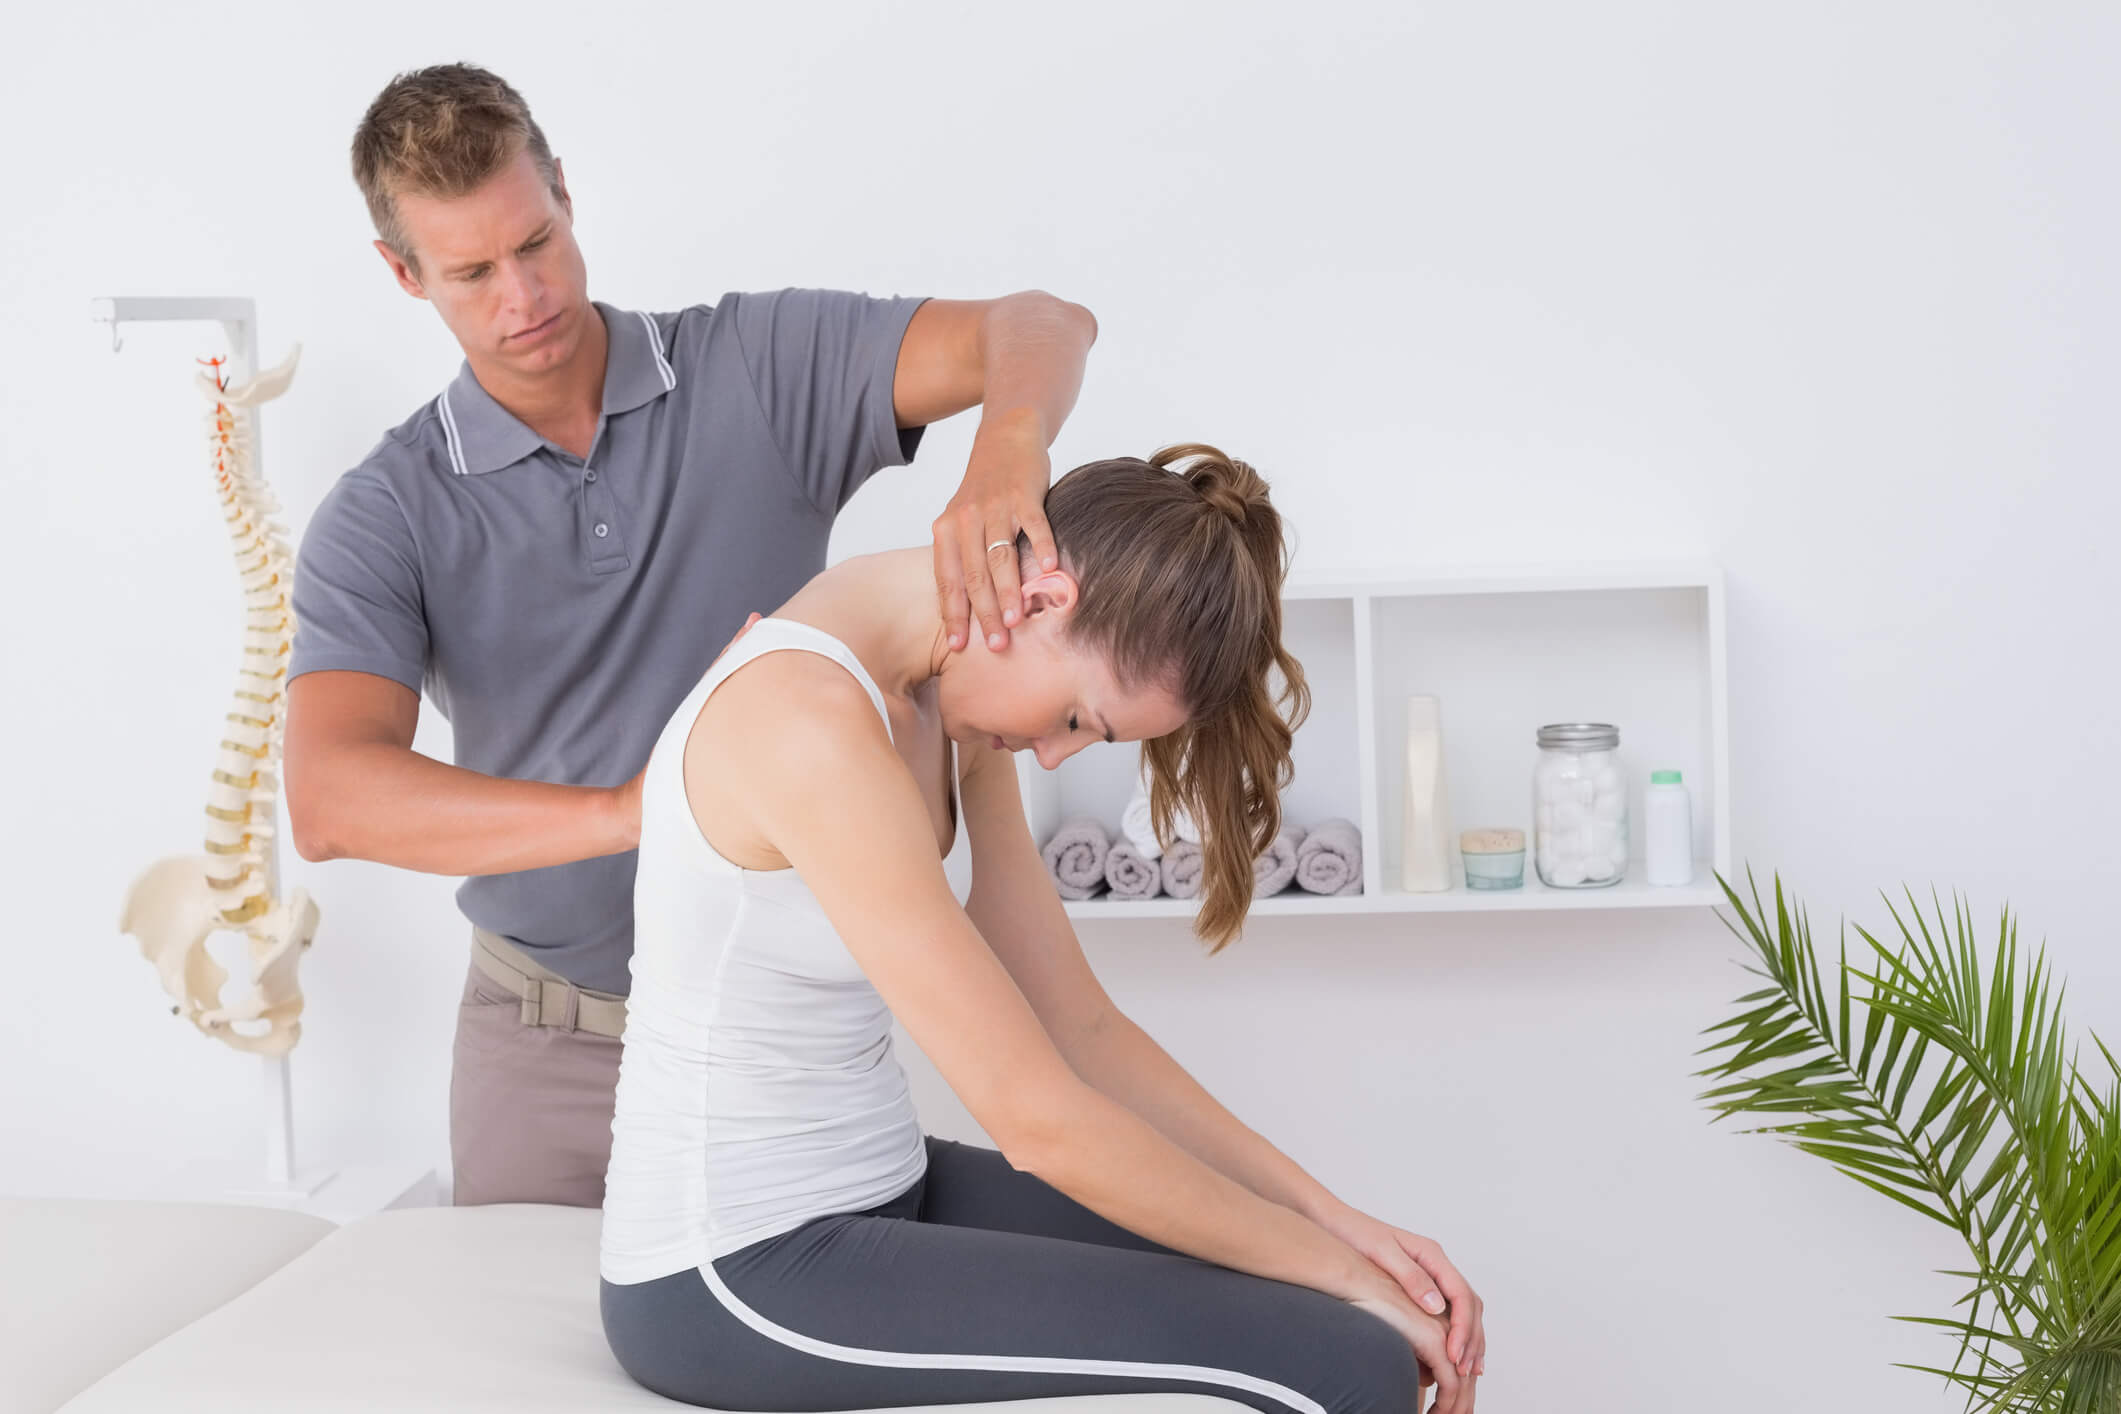 regular adjustments from simmons chiropractic can help you feel your best